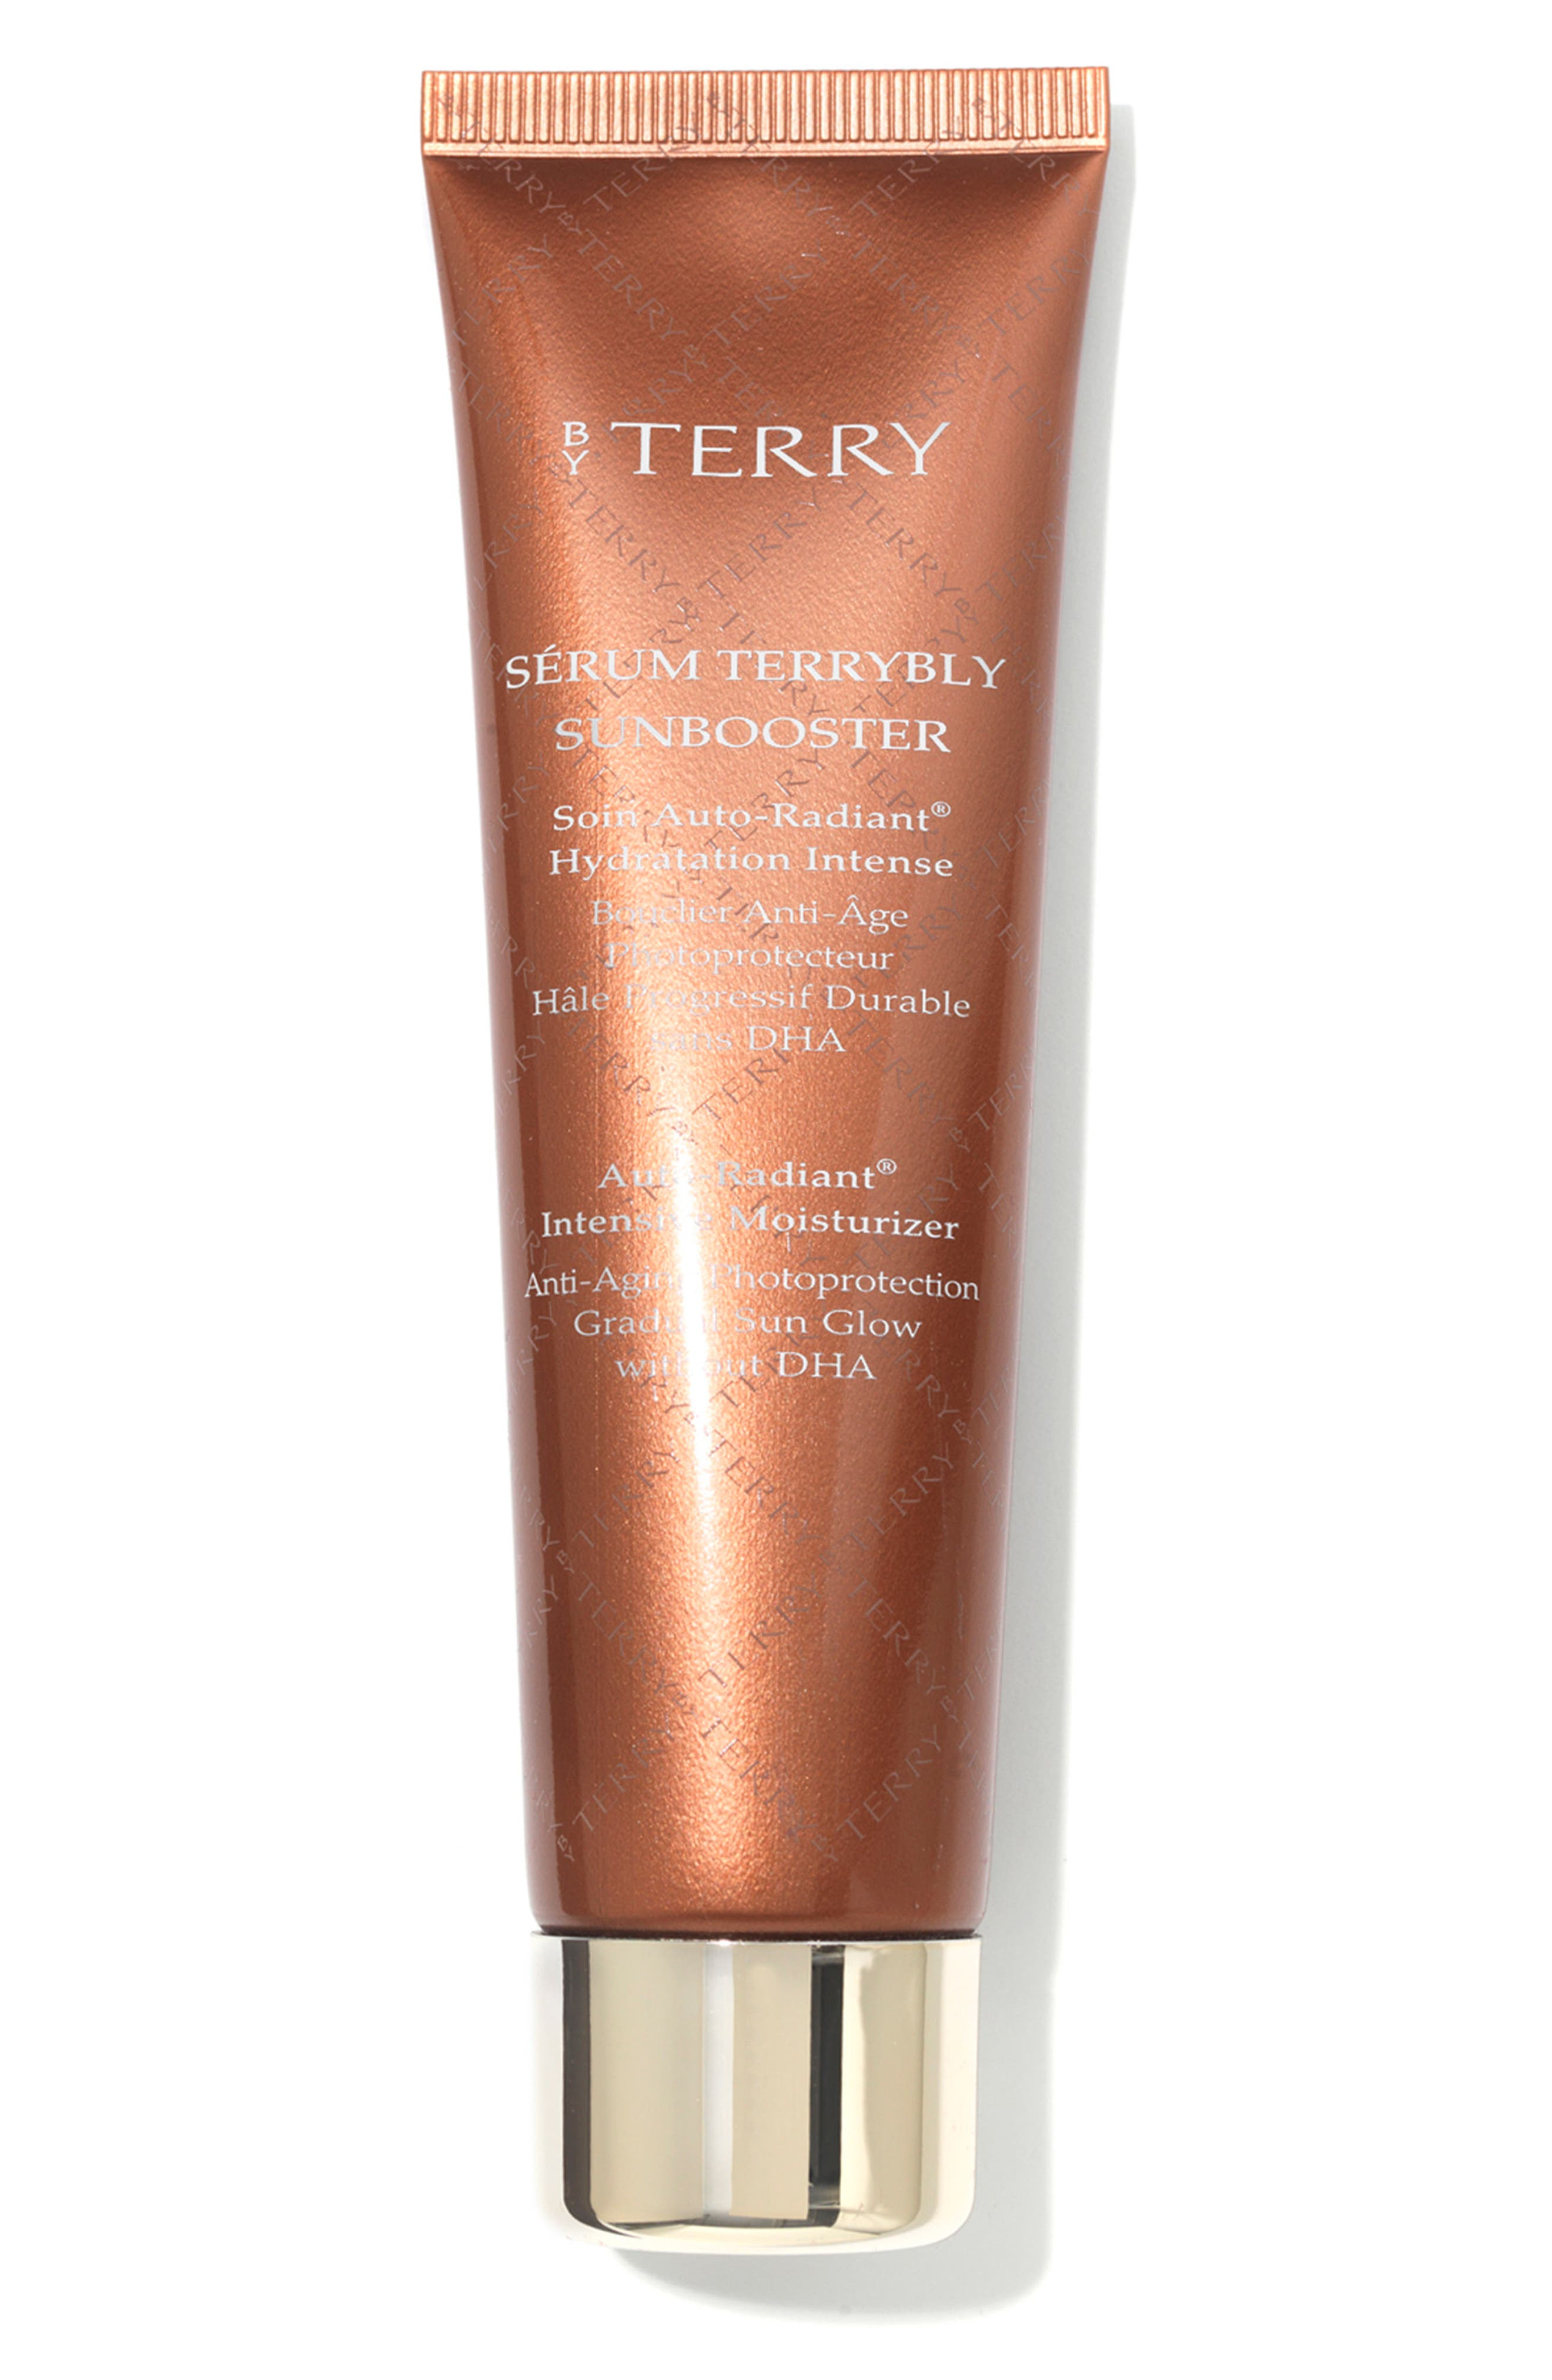 SPACE.NK.apothecary By Terry Serum Terrybly Sun Booster